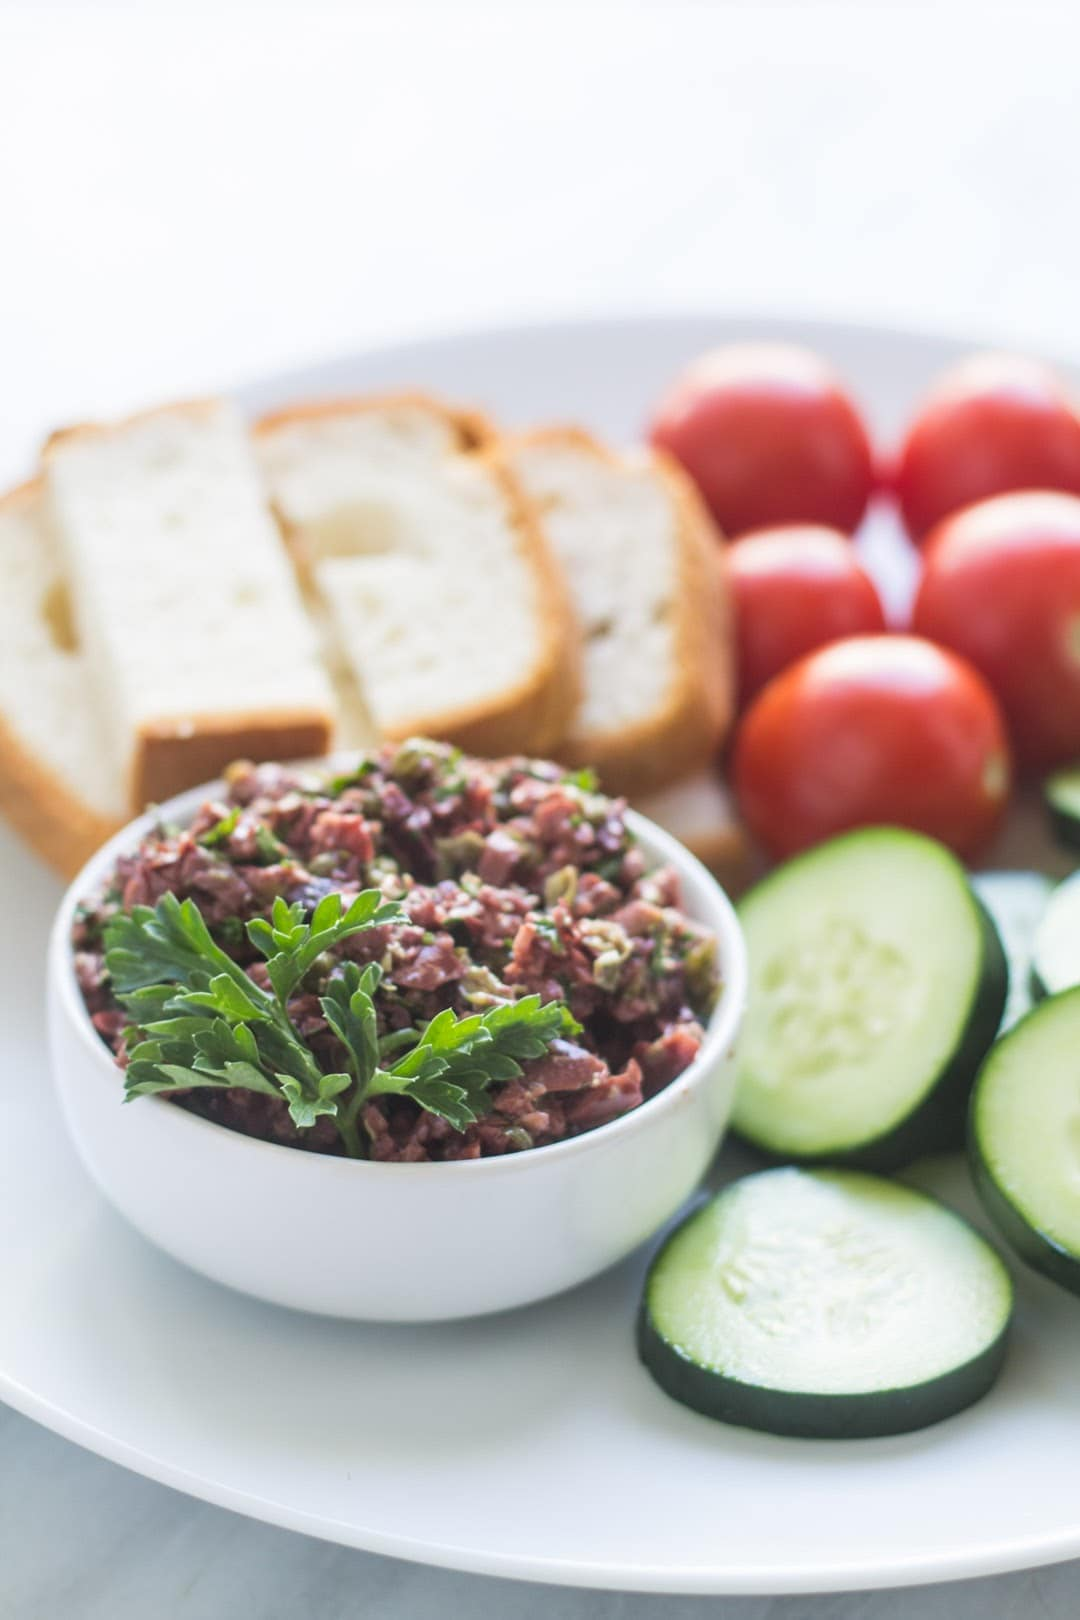 Bowl of low FODMAP olive tapenade surrounded by veggies and gluten-free bread